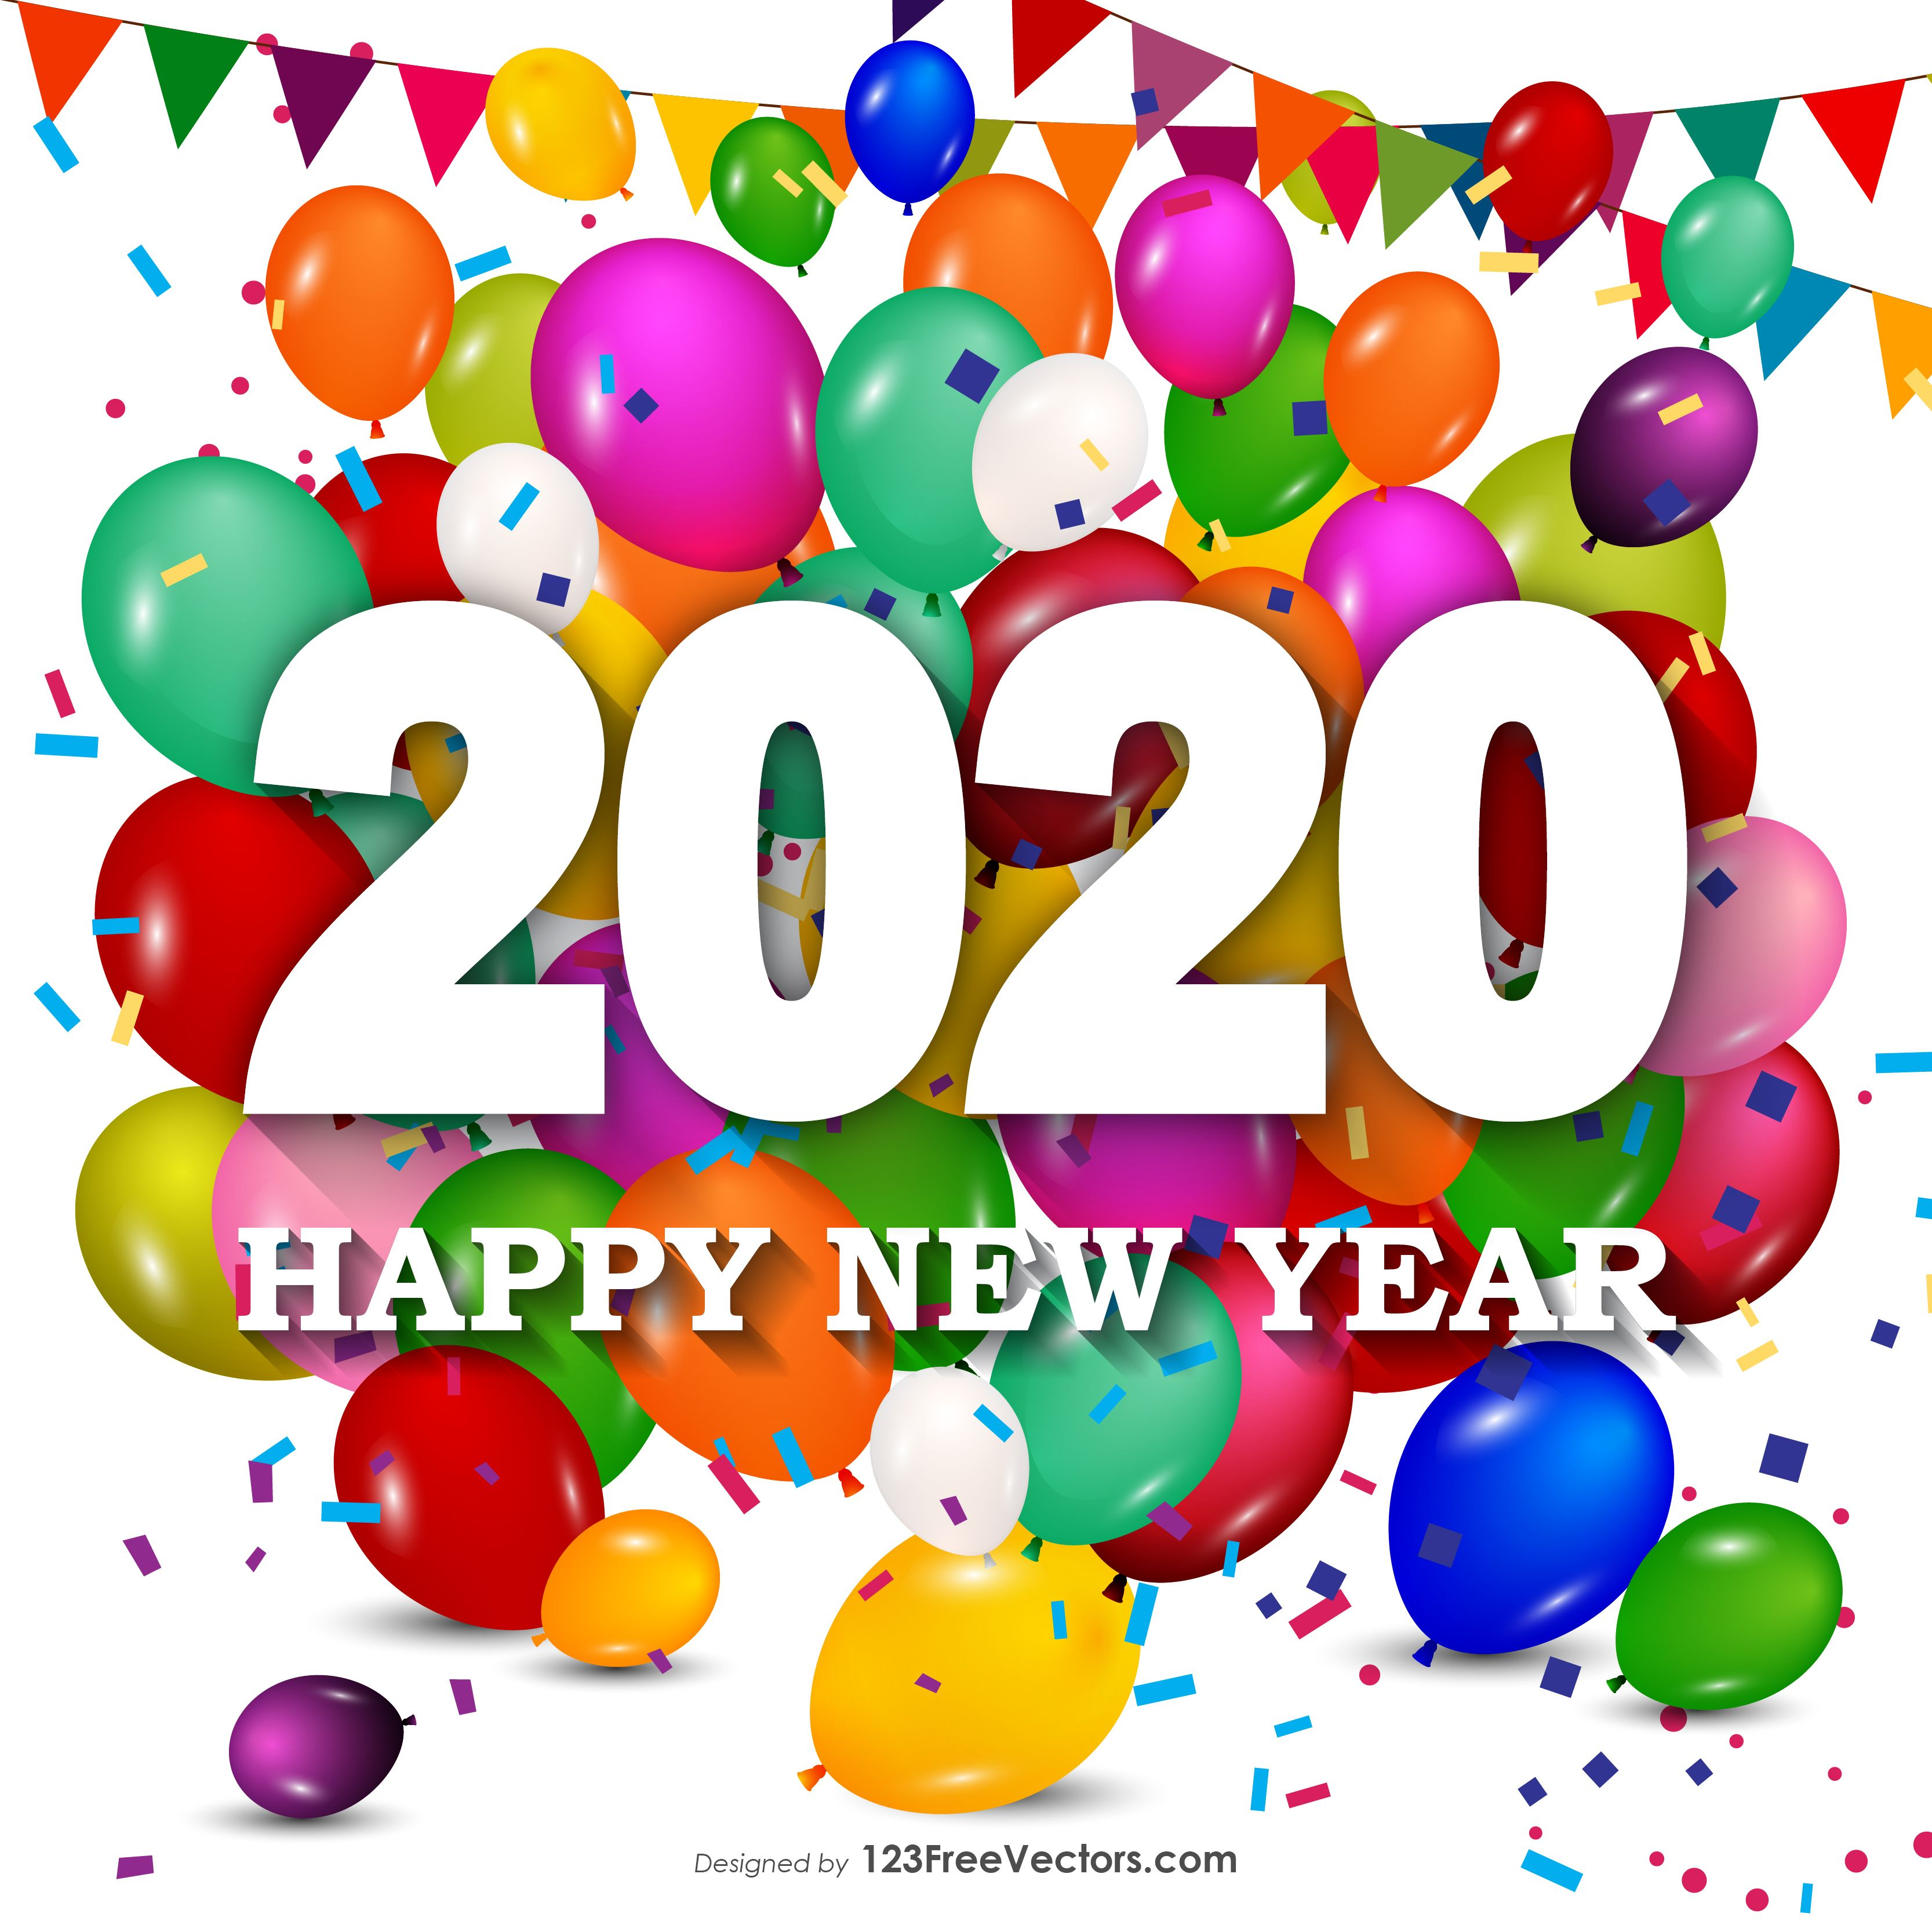 Happy New Year 2020 Images Hd Happy New Year Pictures Happy New Year Images Happy New Year Greetings